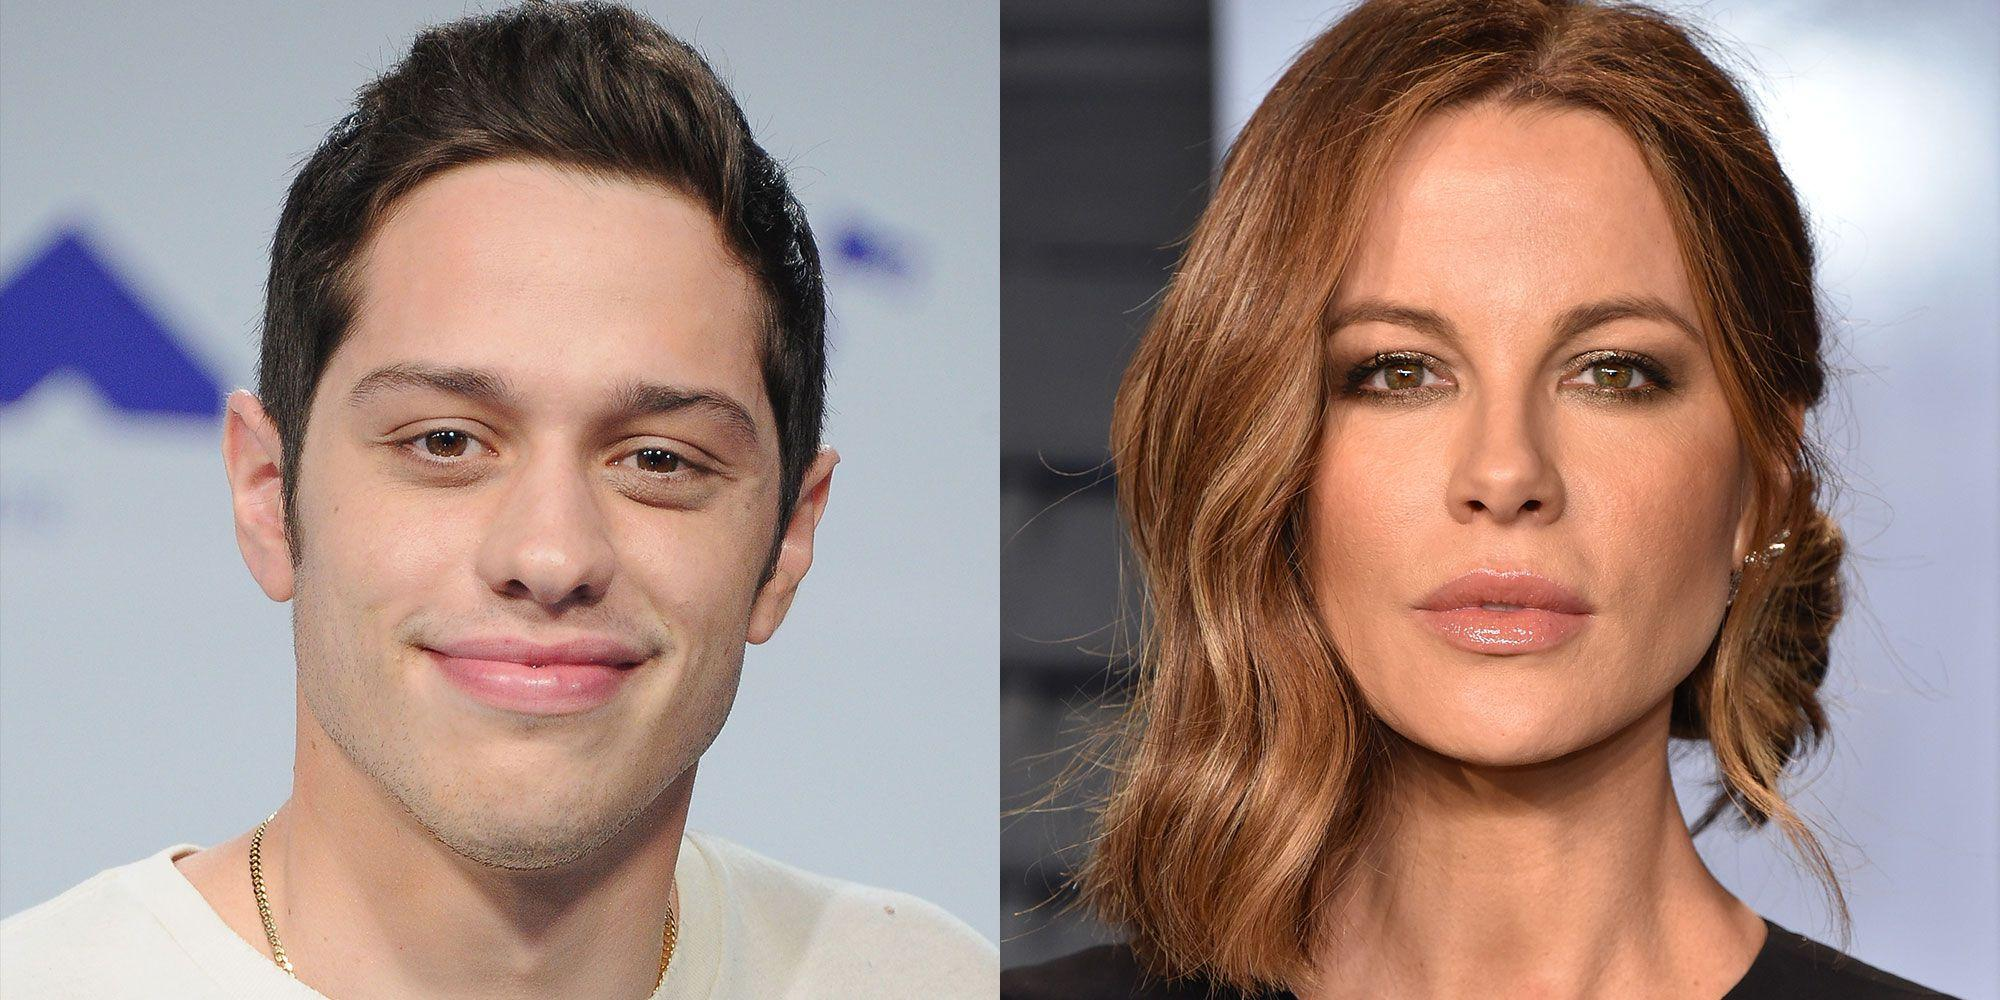 Pete Davidson And Kate Beckinsale Photographed At SNL After-Party Together